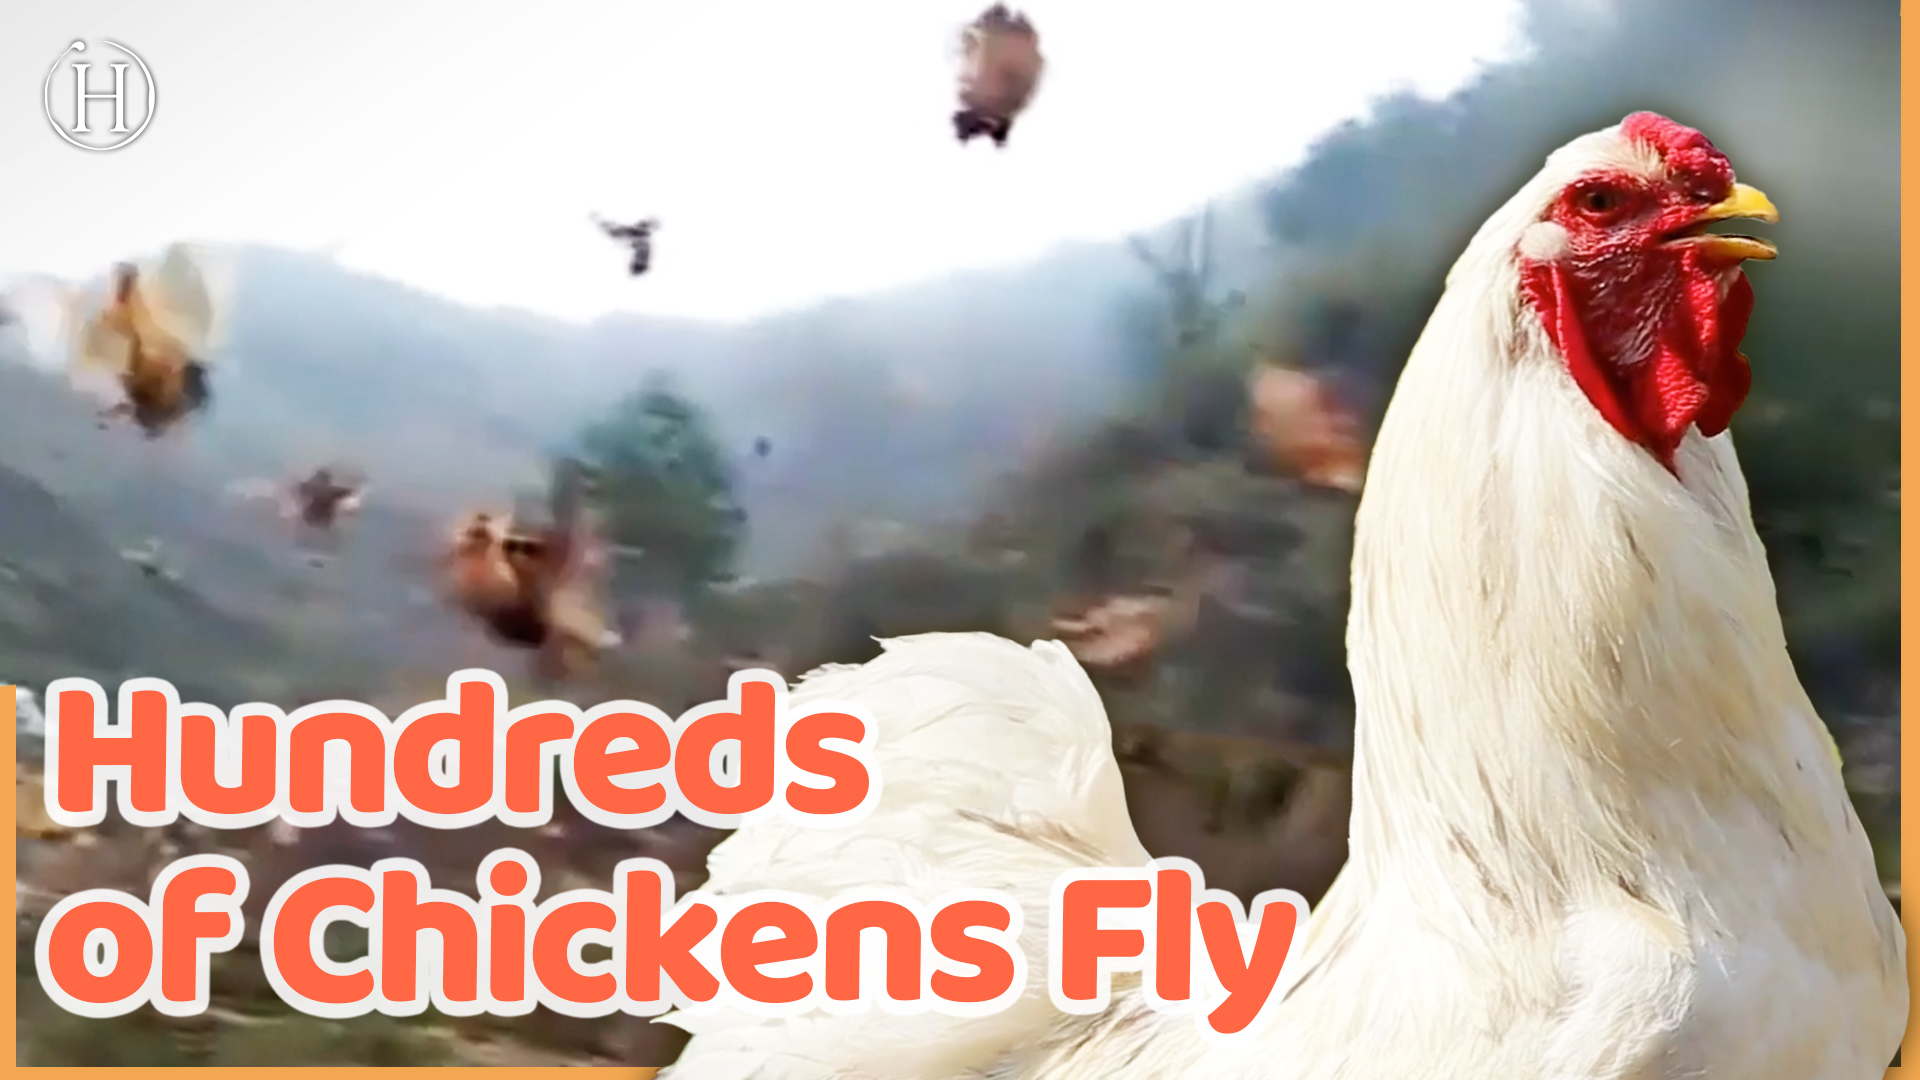 Farmer Conduct Flock of Hundreds of Chickens by Blowing Whistle | Humanity Life